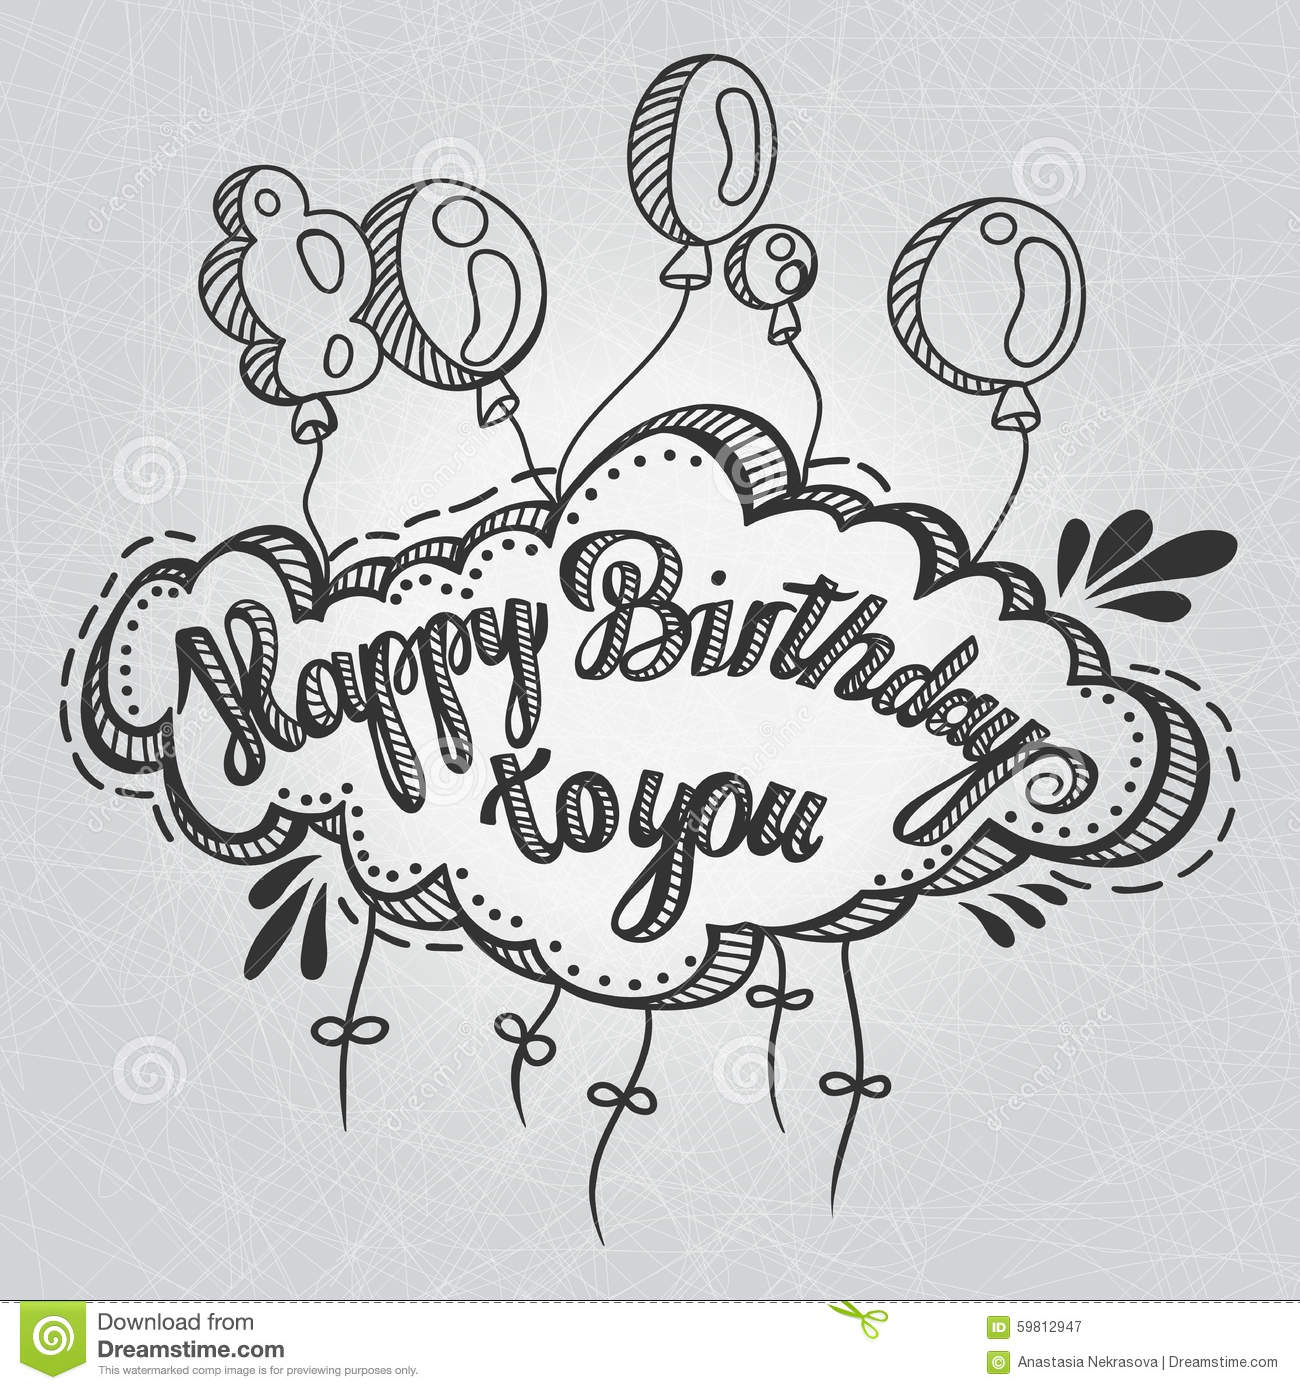 happy birthday sketch drawing ; happy-birthday-pencil-sketches-drawn-balloon-happy-birthday-pencil-and-in-color-drawn-balloon